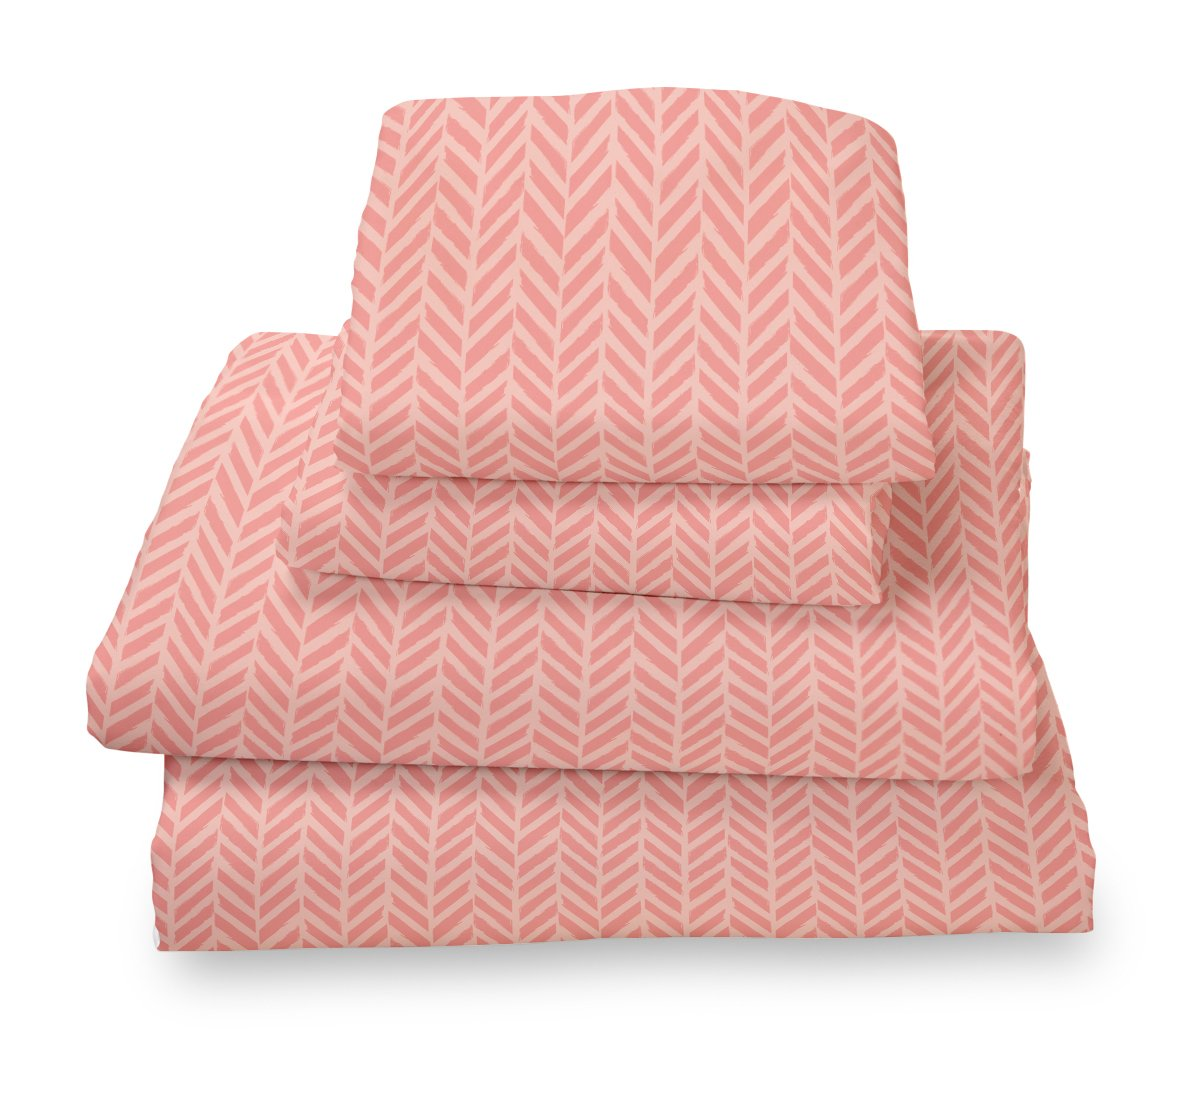 Full Sheet Set Coral Herringbone - Double Brushed Ultra Microfiber Luxury Bedding